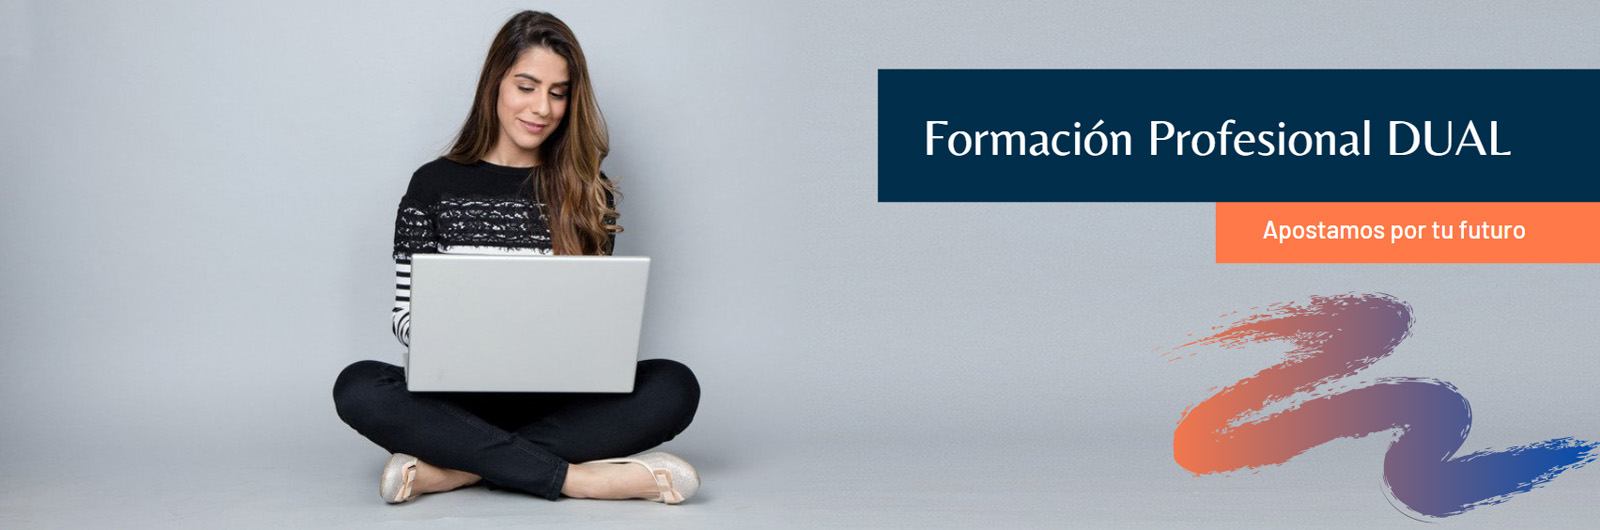 01-banner-fpdual